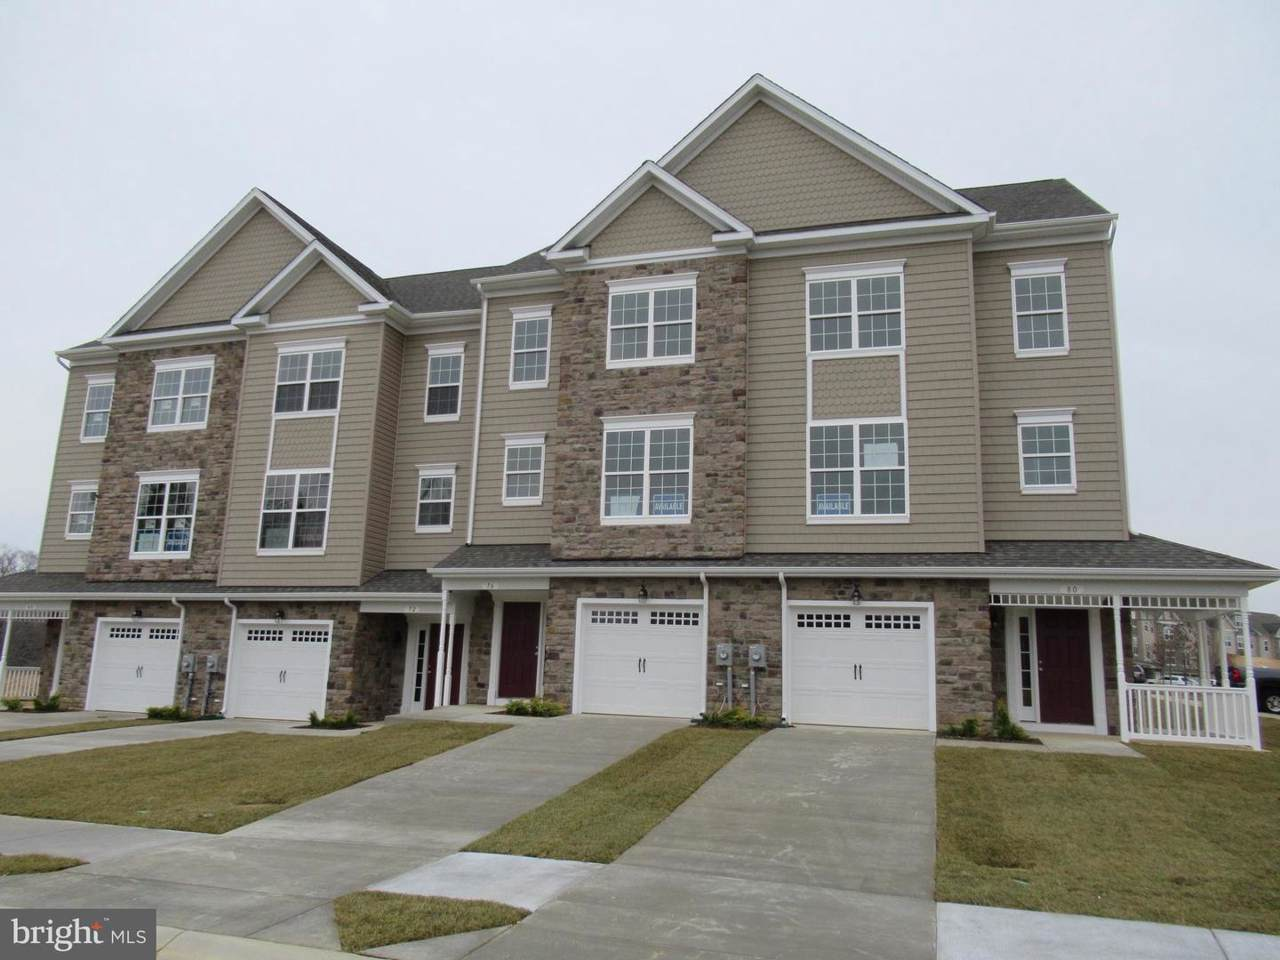 83 Clydesdale Lane - Photo 1